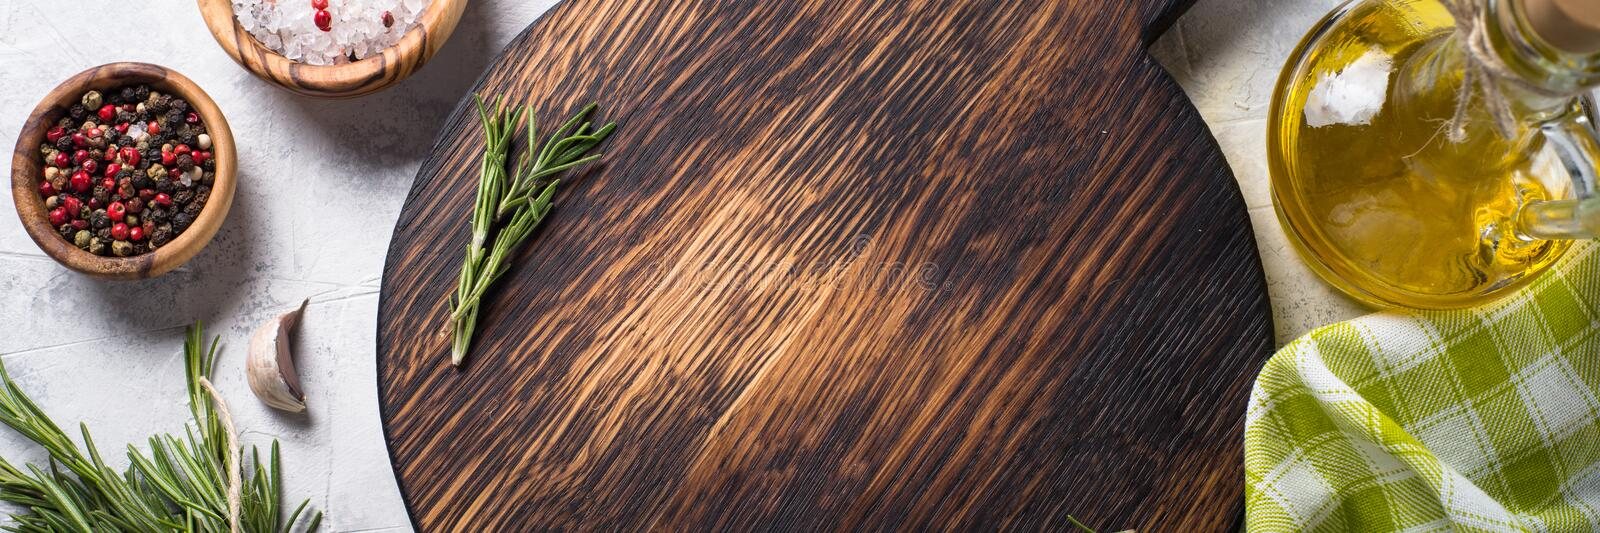 Food cooking background. Long banner format. royalty free stock photo